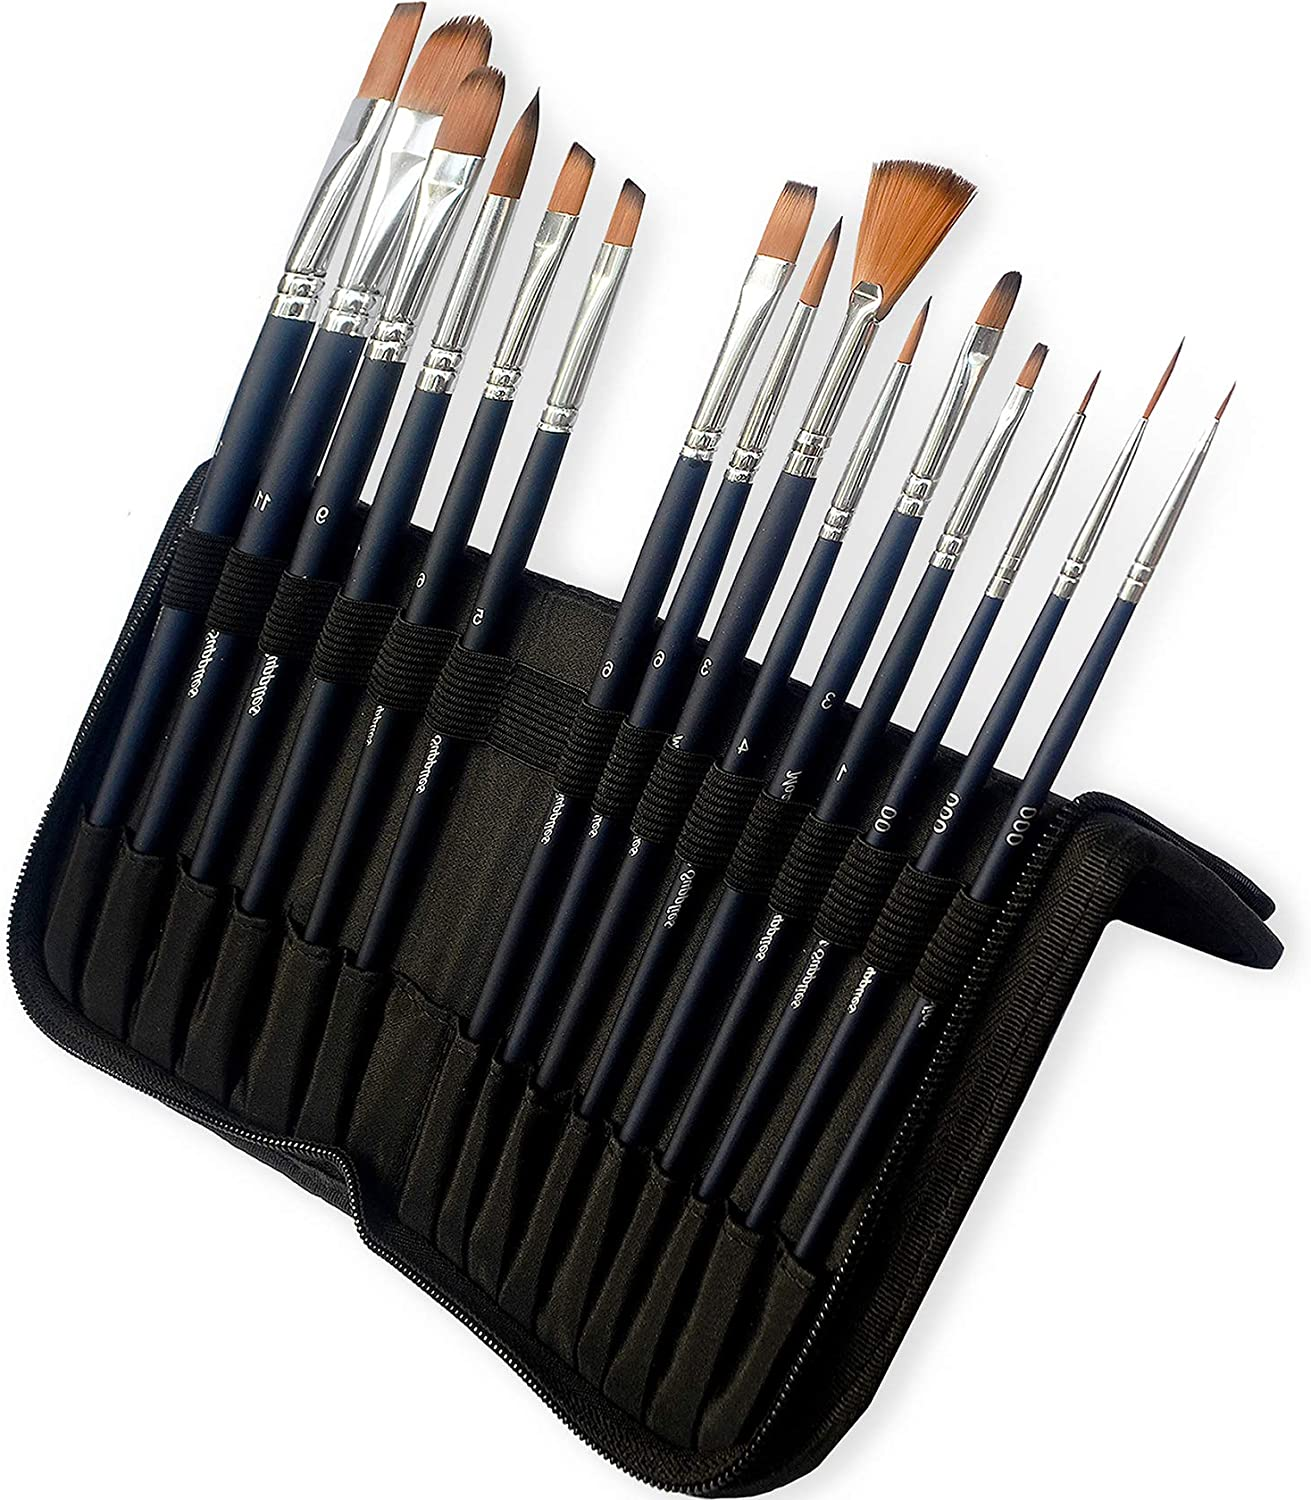 MozArt Supplies Watercolor Paint Brush Set - 15 Assorted Synthetic Hair Paint Brushes - Includes Portable Case with Brush Stand Artist Grade